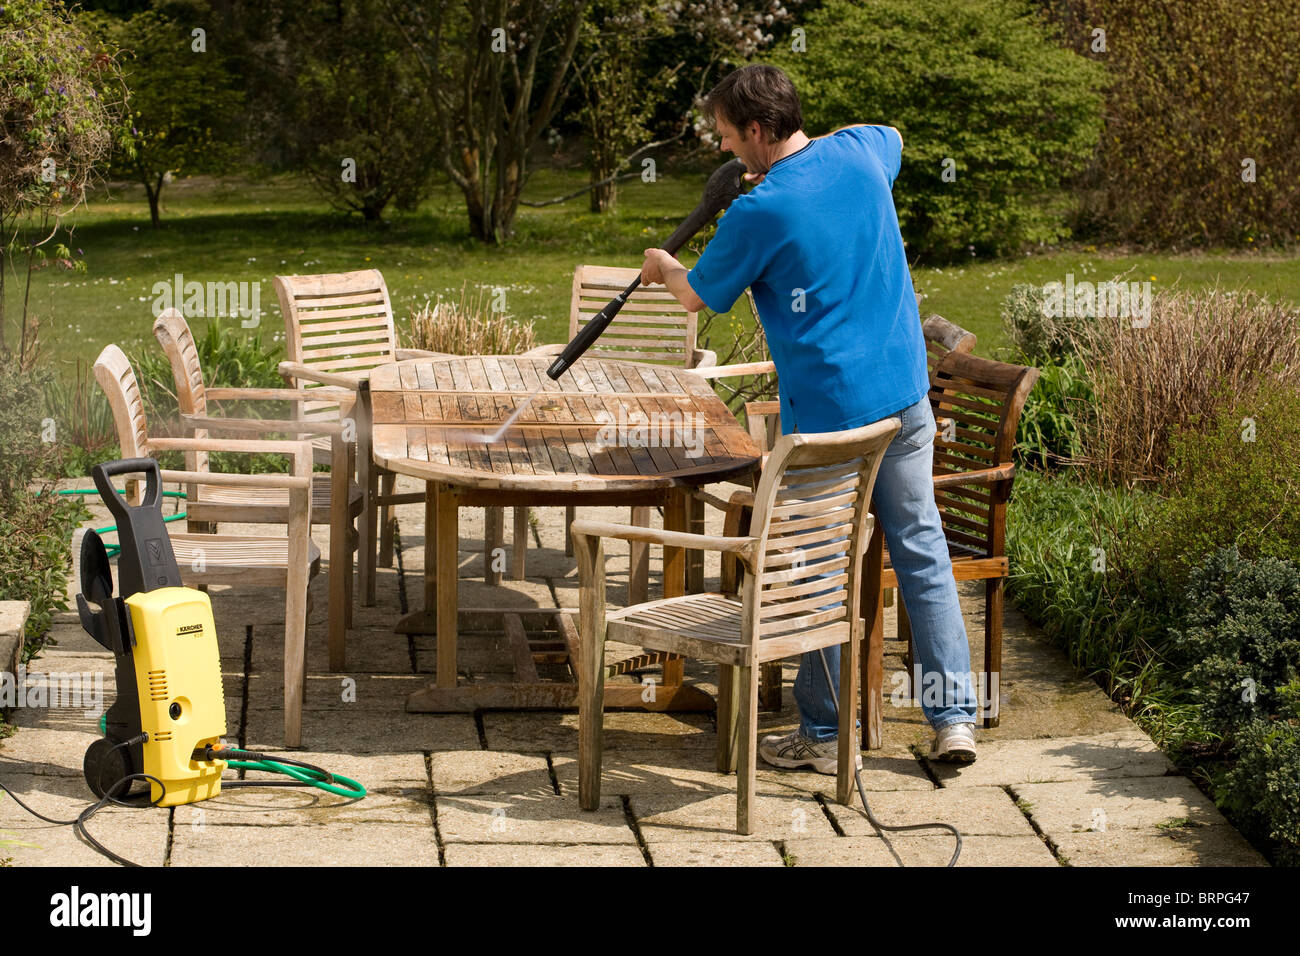 Cleaning Teak Patio Furniture.Man Using A Pressure Washer To Clean Teak Wood Garden Furniture